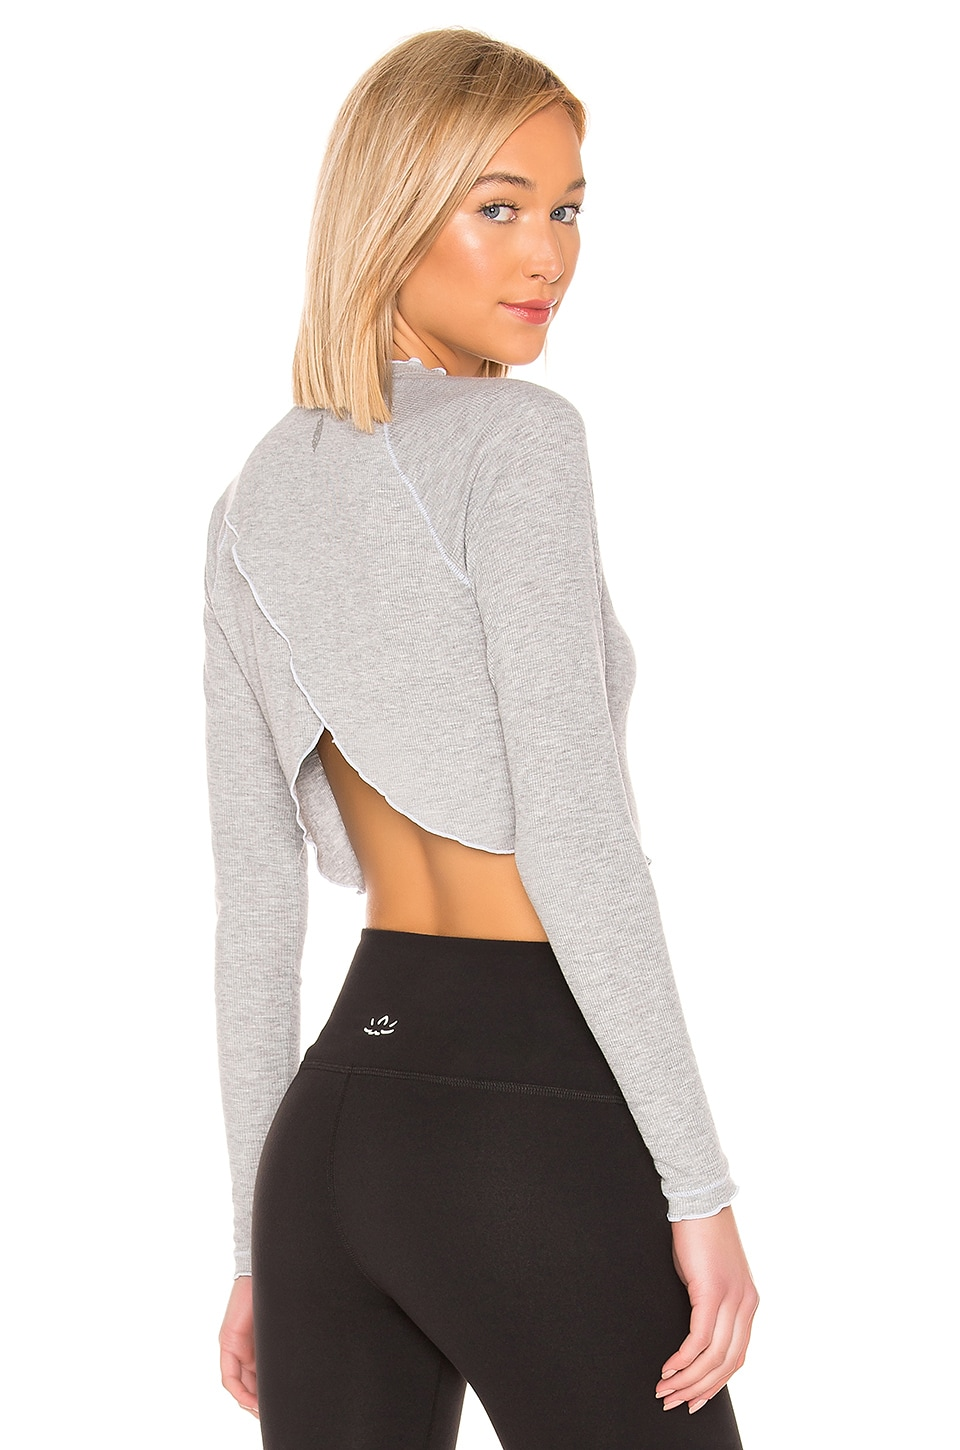 Free People Movement Rib and Stitch Casual Layering Tee in Grey Combo